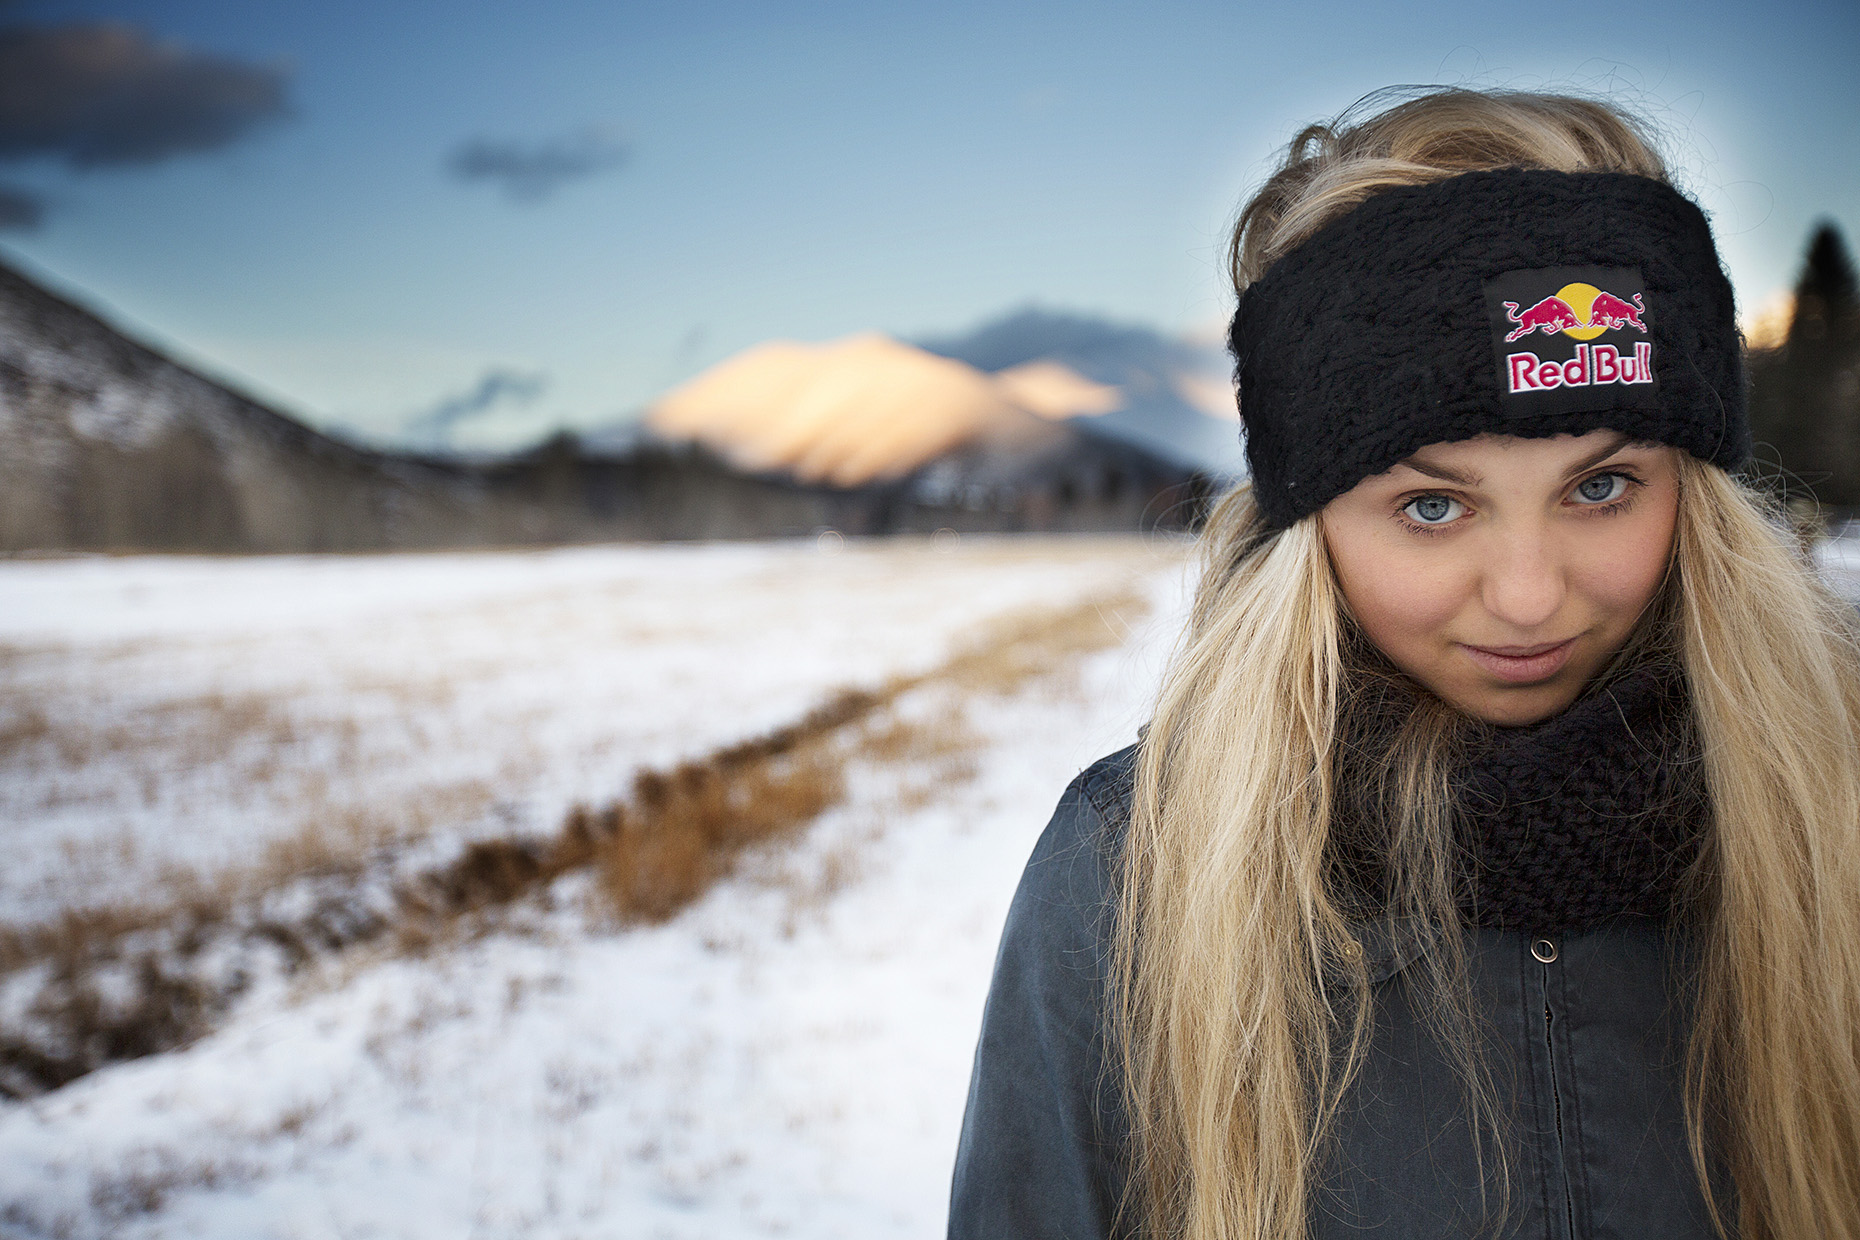 Olympic snowboarder Aimee Fuller for Red Bull by Boston based commercial portrait photographer Brian Nevins